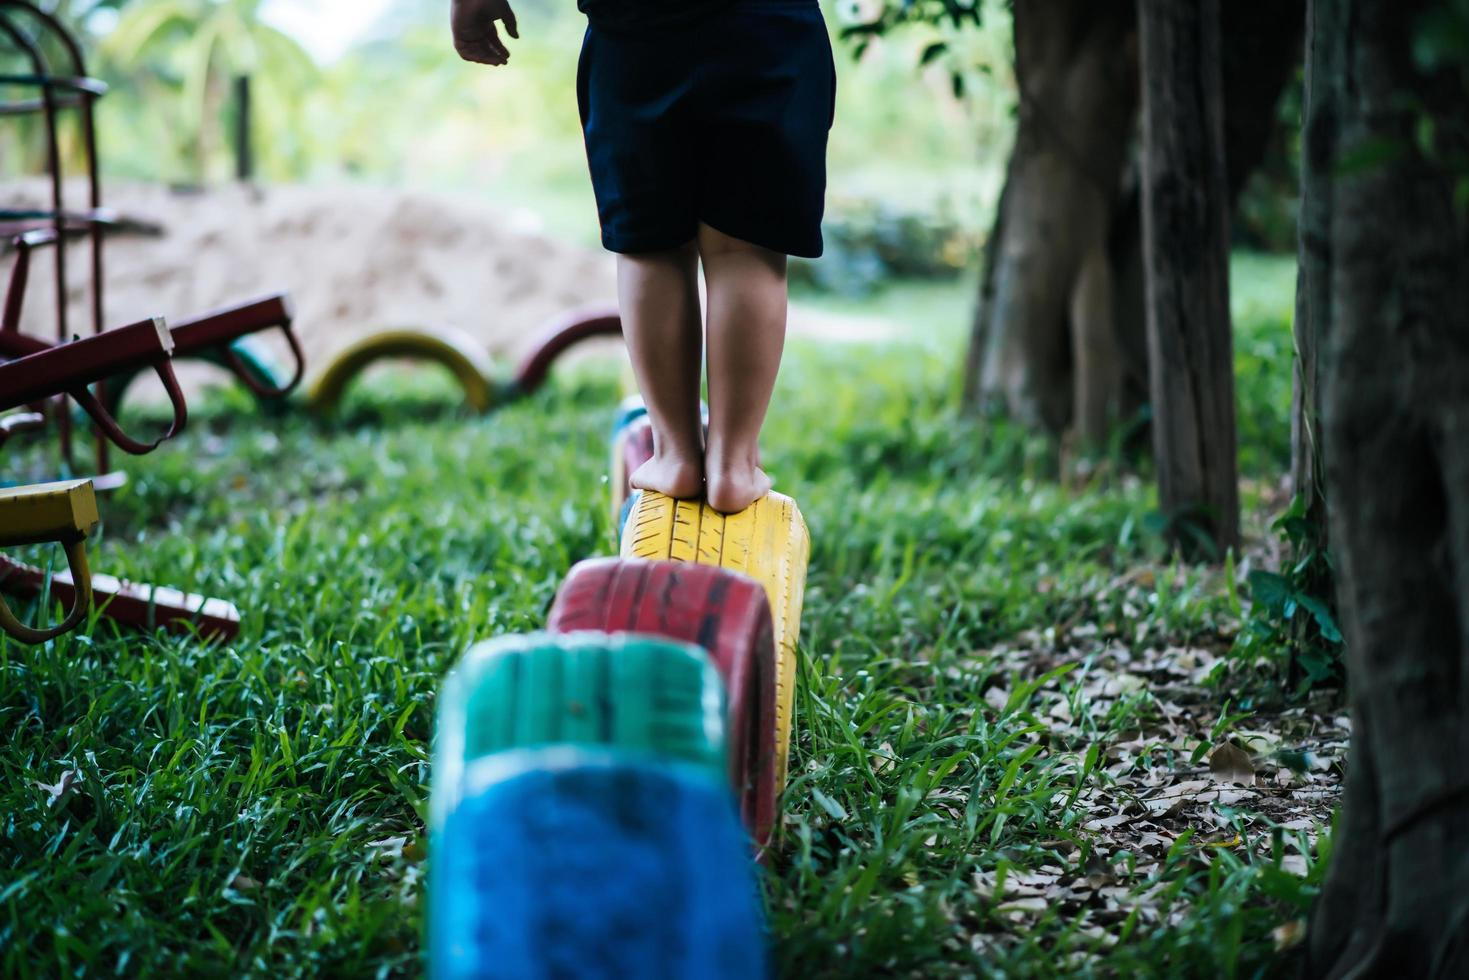 Kid running on tires in the playground photo